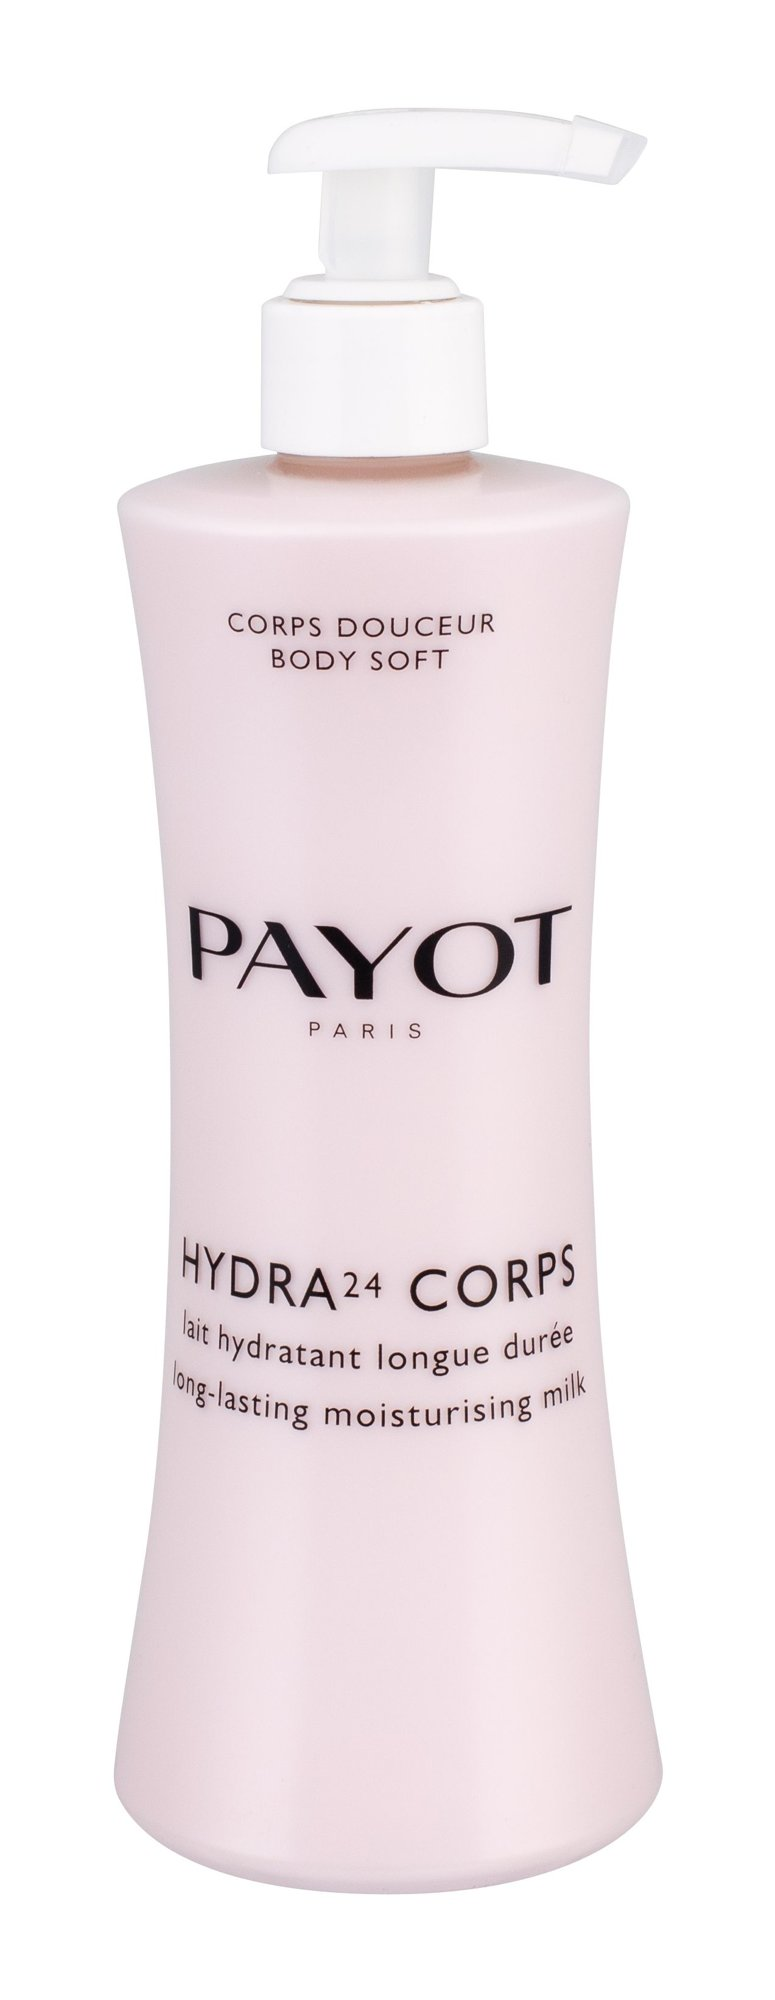 PAYOT Le Corps Body Lotion 400ml